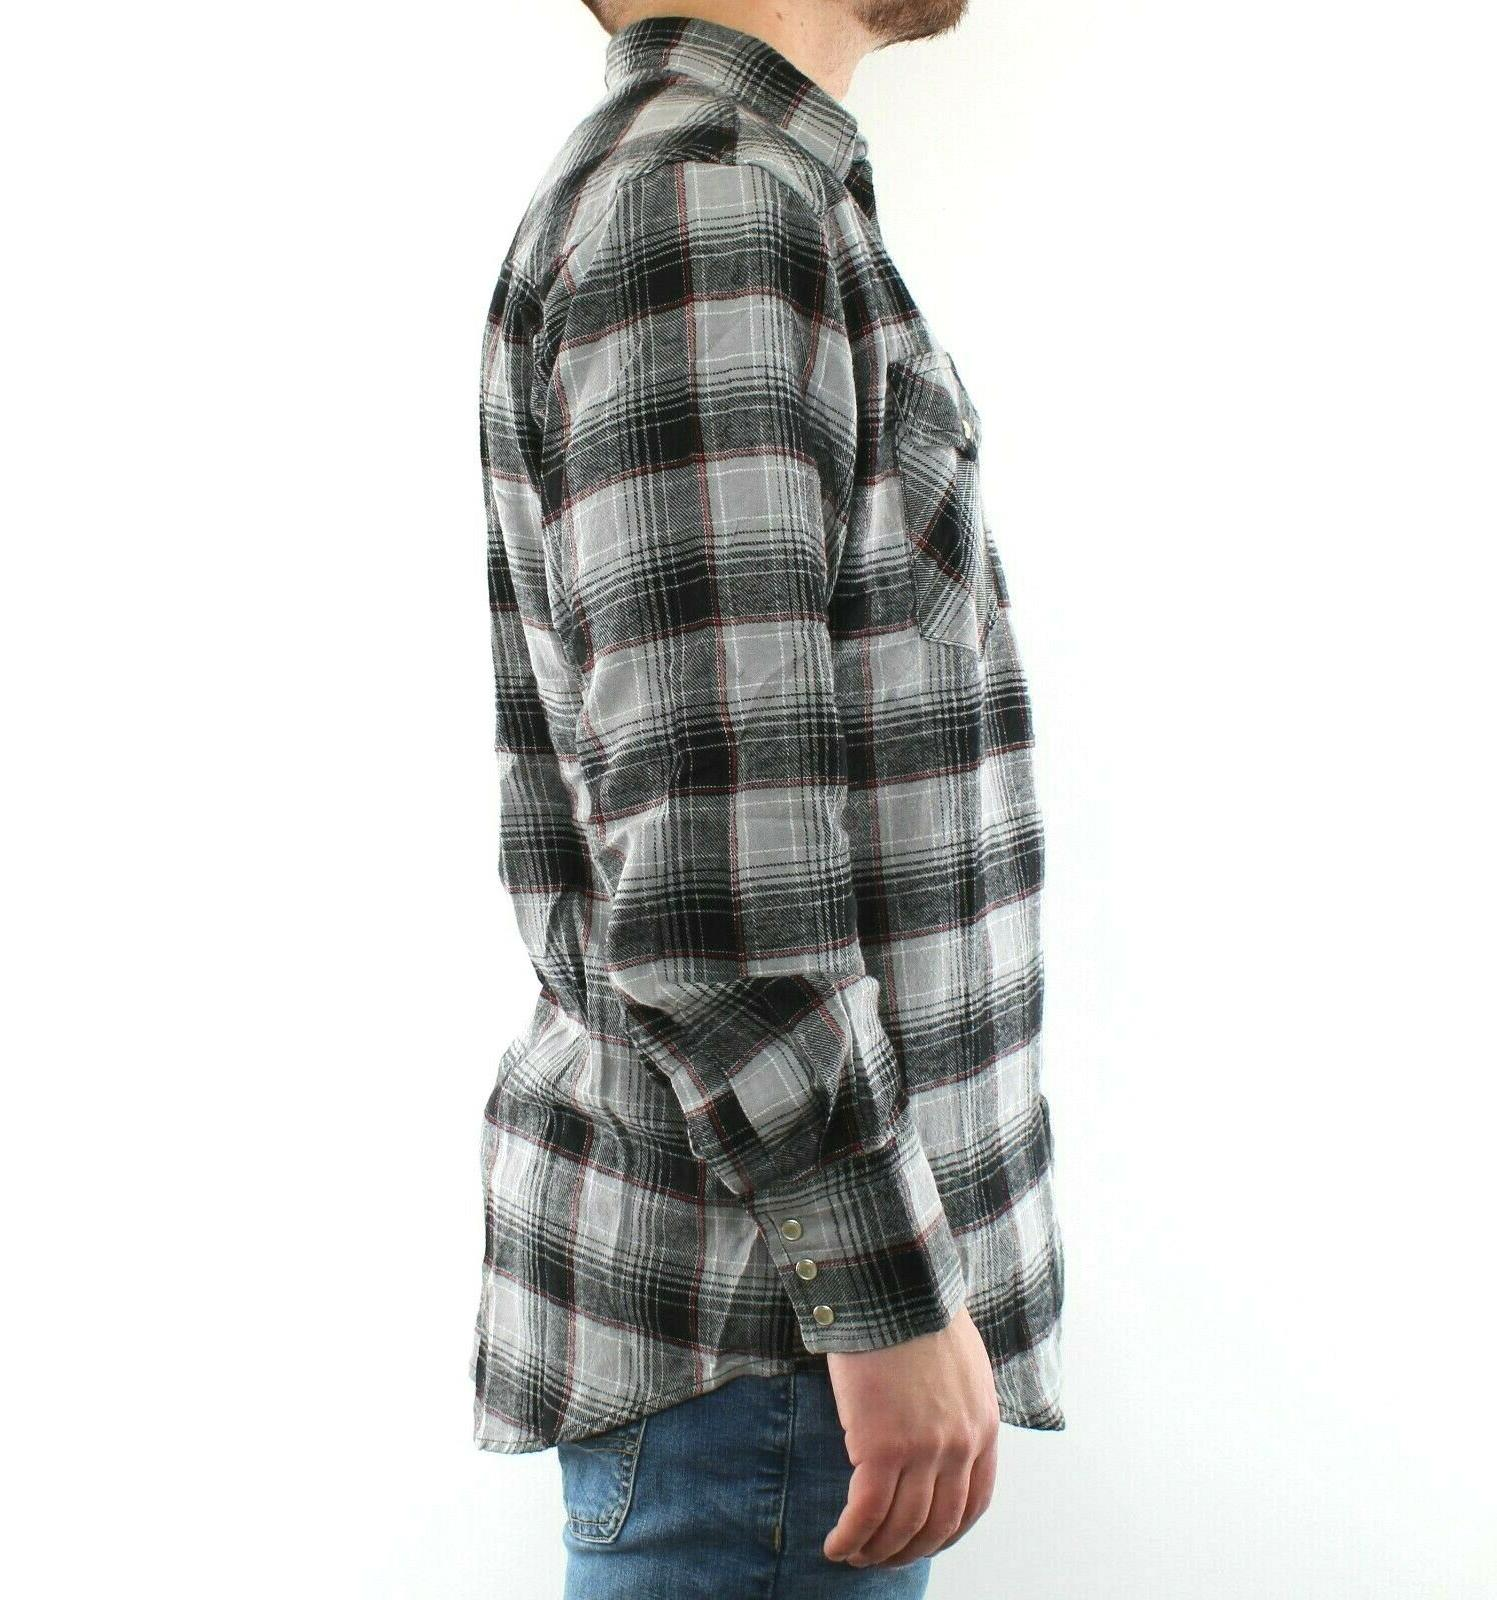 Wrangler Men's Plaid Long Sleeve Cotton